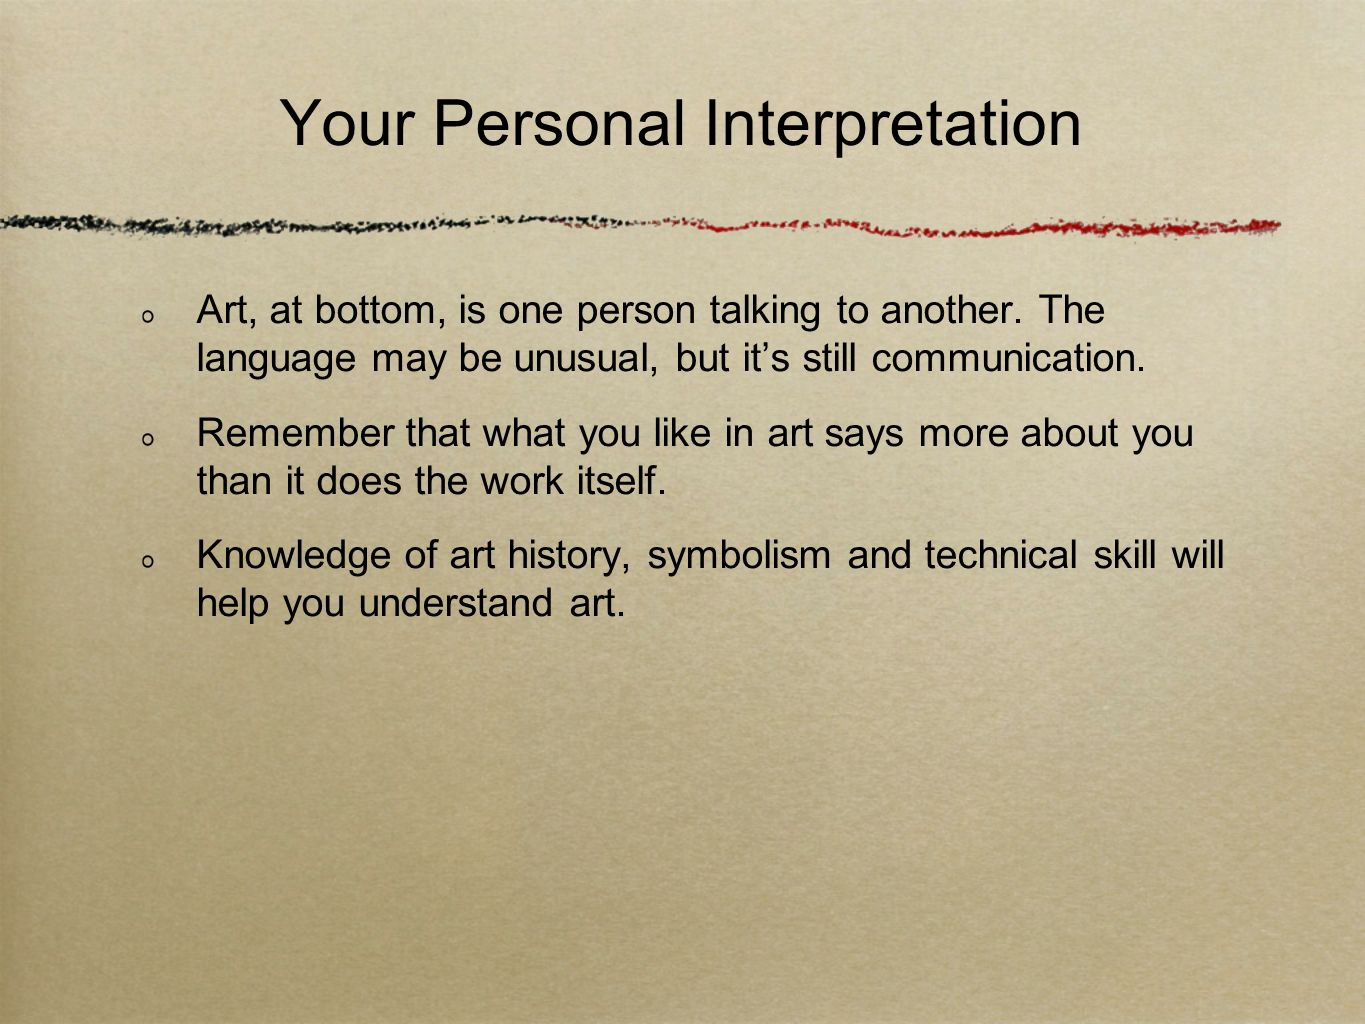 Your Personal Interpretation Art, at bottom, is one person talking to another. The language may be unusual, but its still communication. Remember that